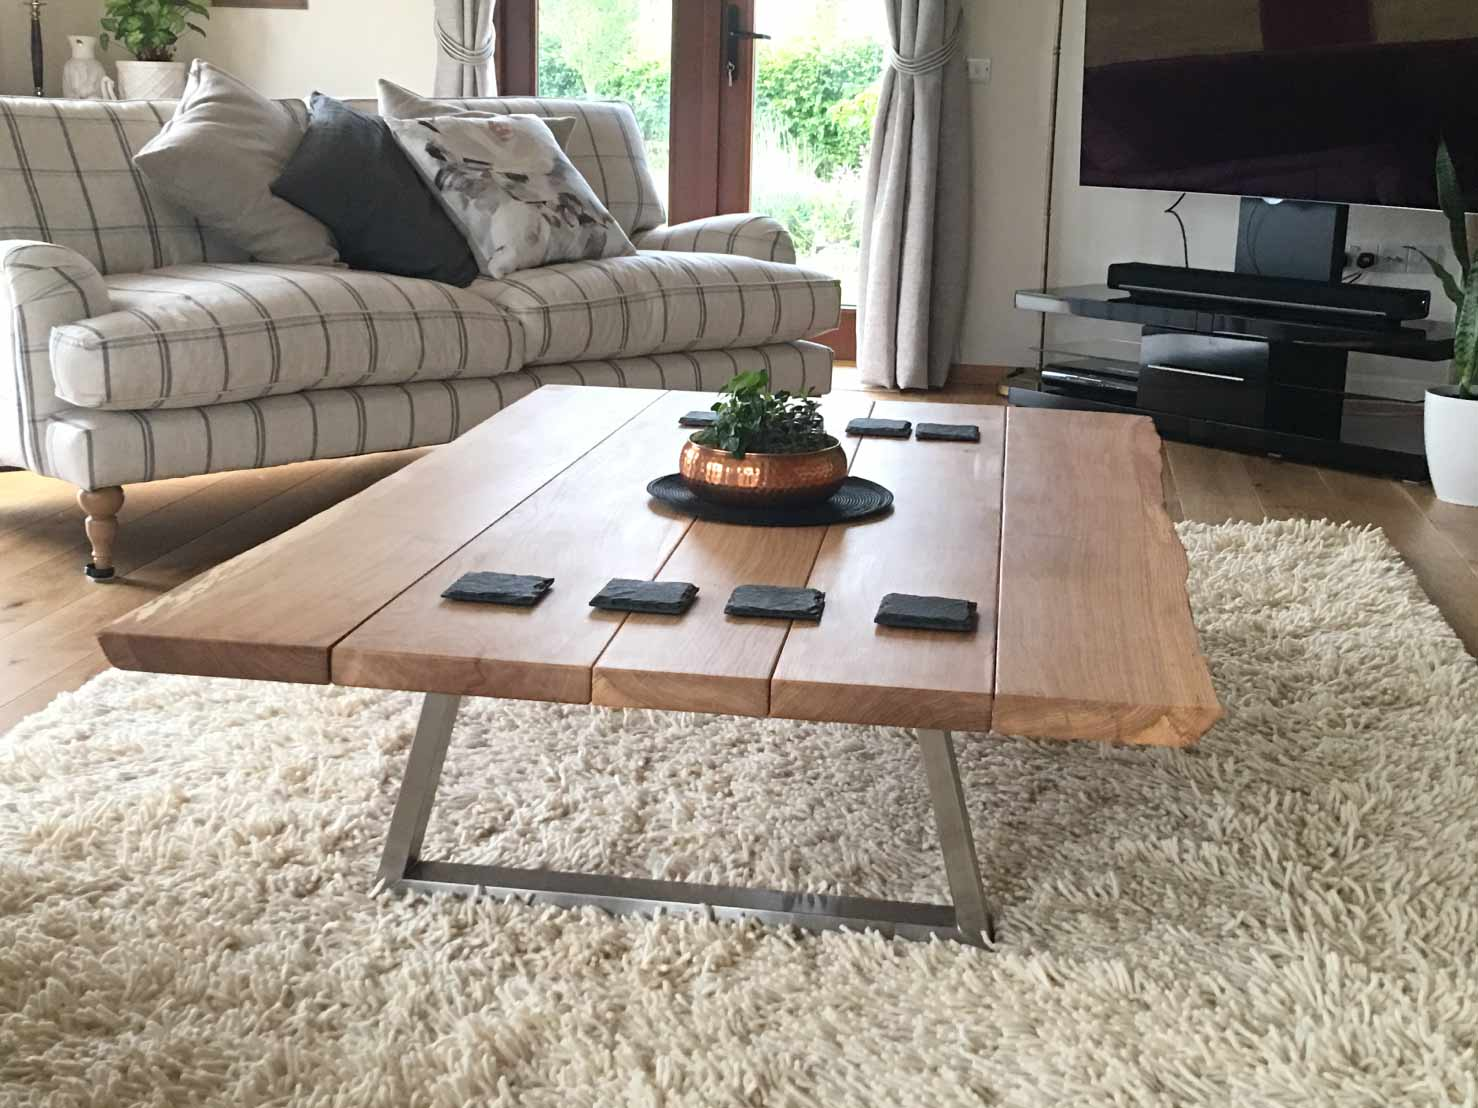 industrial-coffee-table-from-abacus-tables-piranha-natural-oak-live-edge-1.7m-x-1.1m-project-372